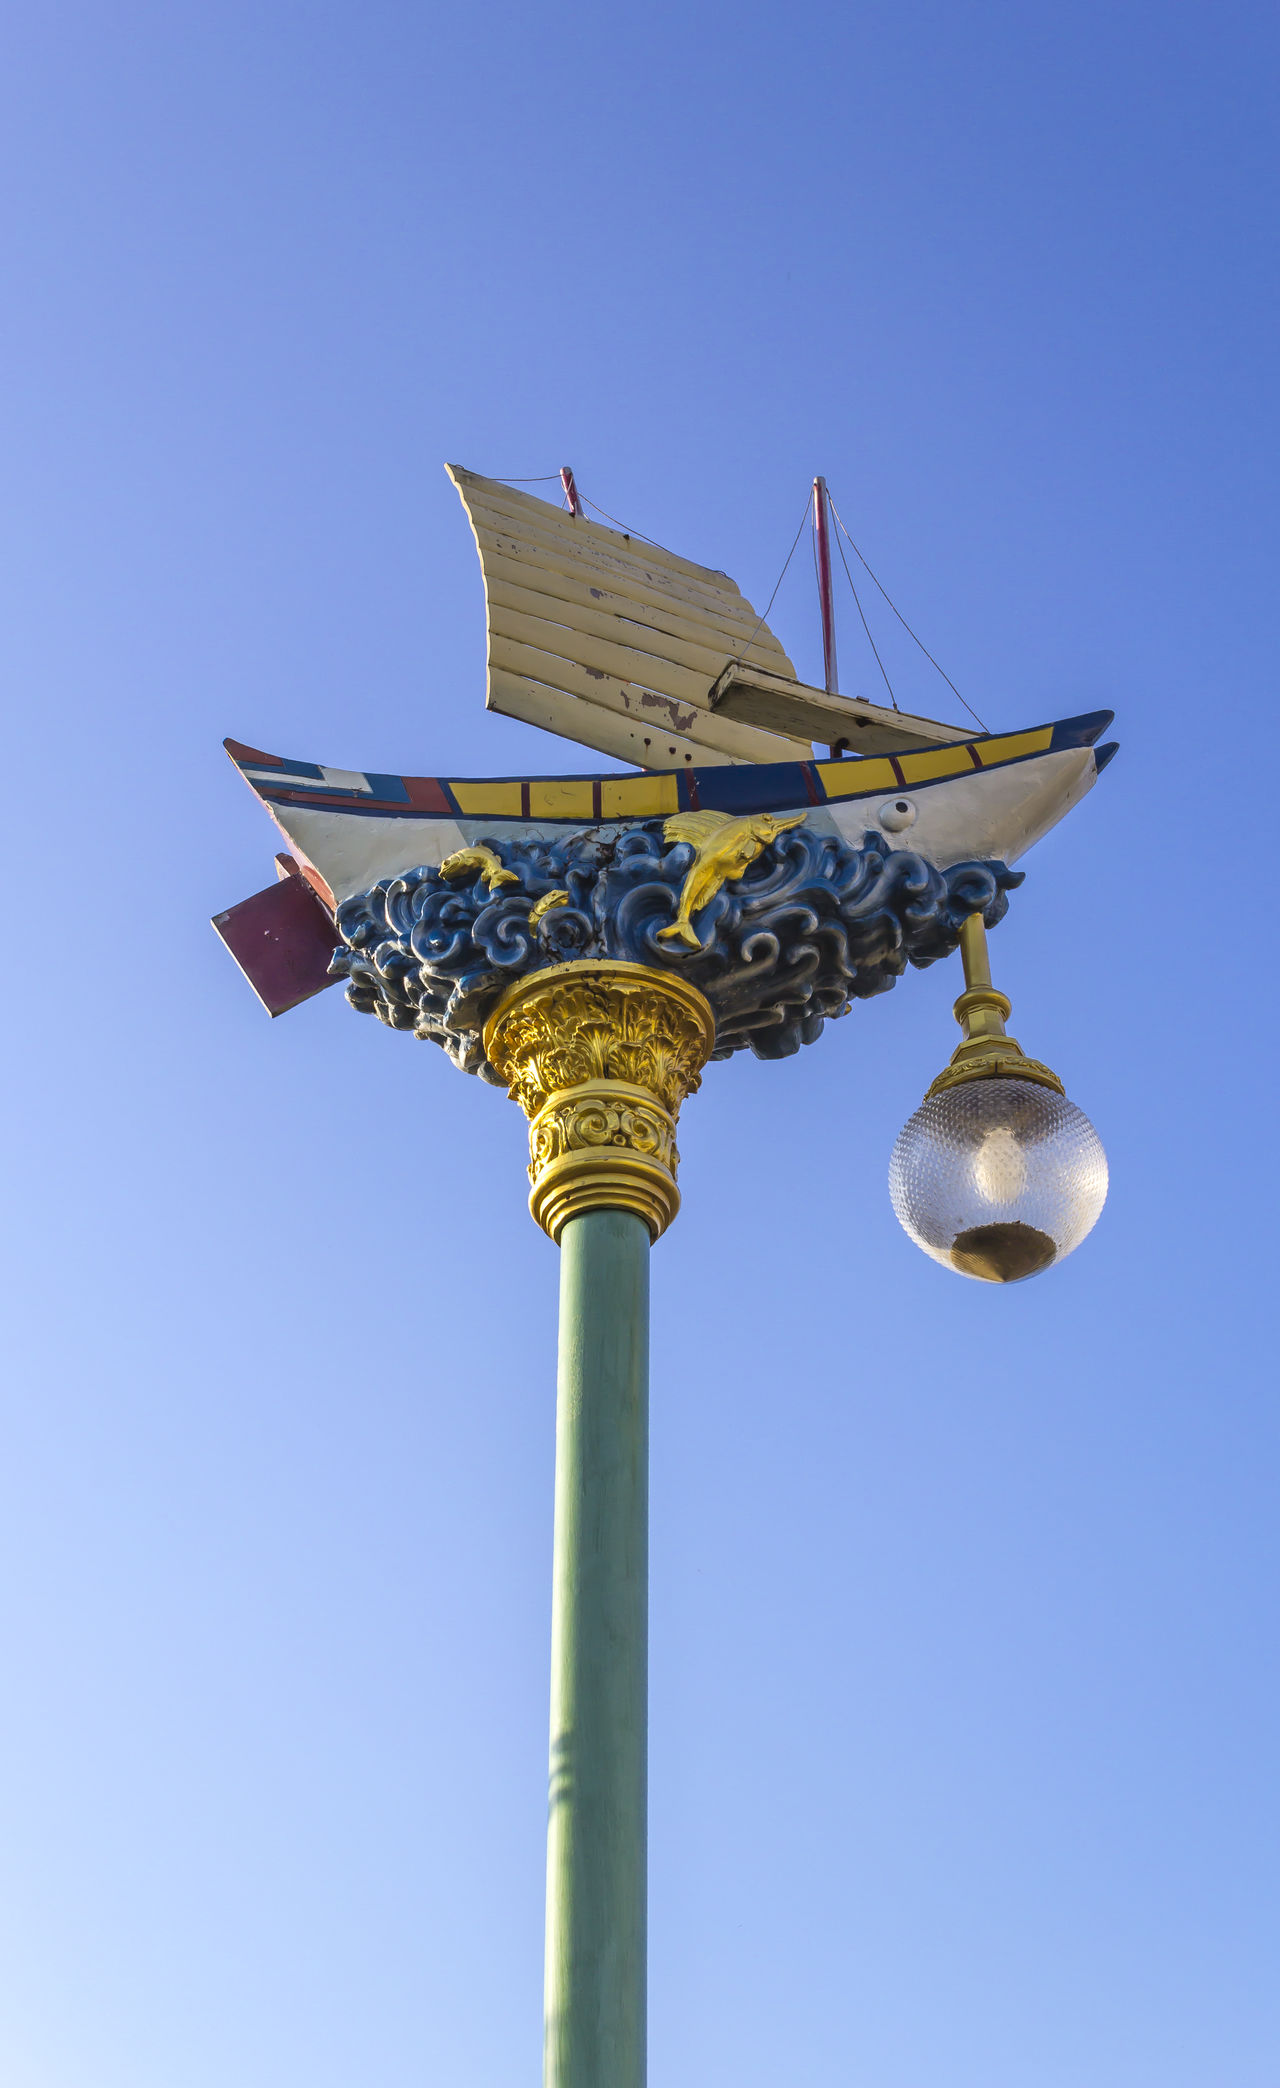 Street light lamp on the blue sky background Ancient Anterns Architecture Boat Bulb Chinese Culture City Day Design Electric Lamp Lamp Lamp Post Light Pole Ship Sky Street Lamp Street Light Urban